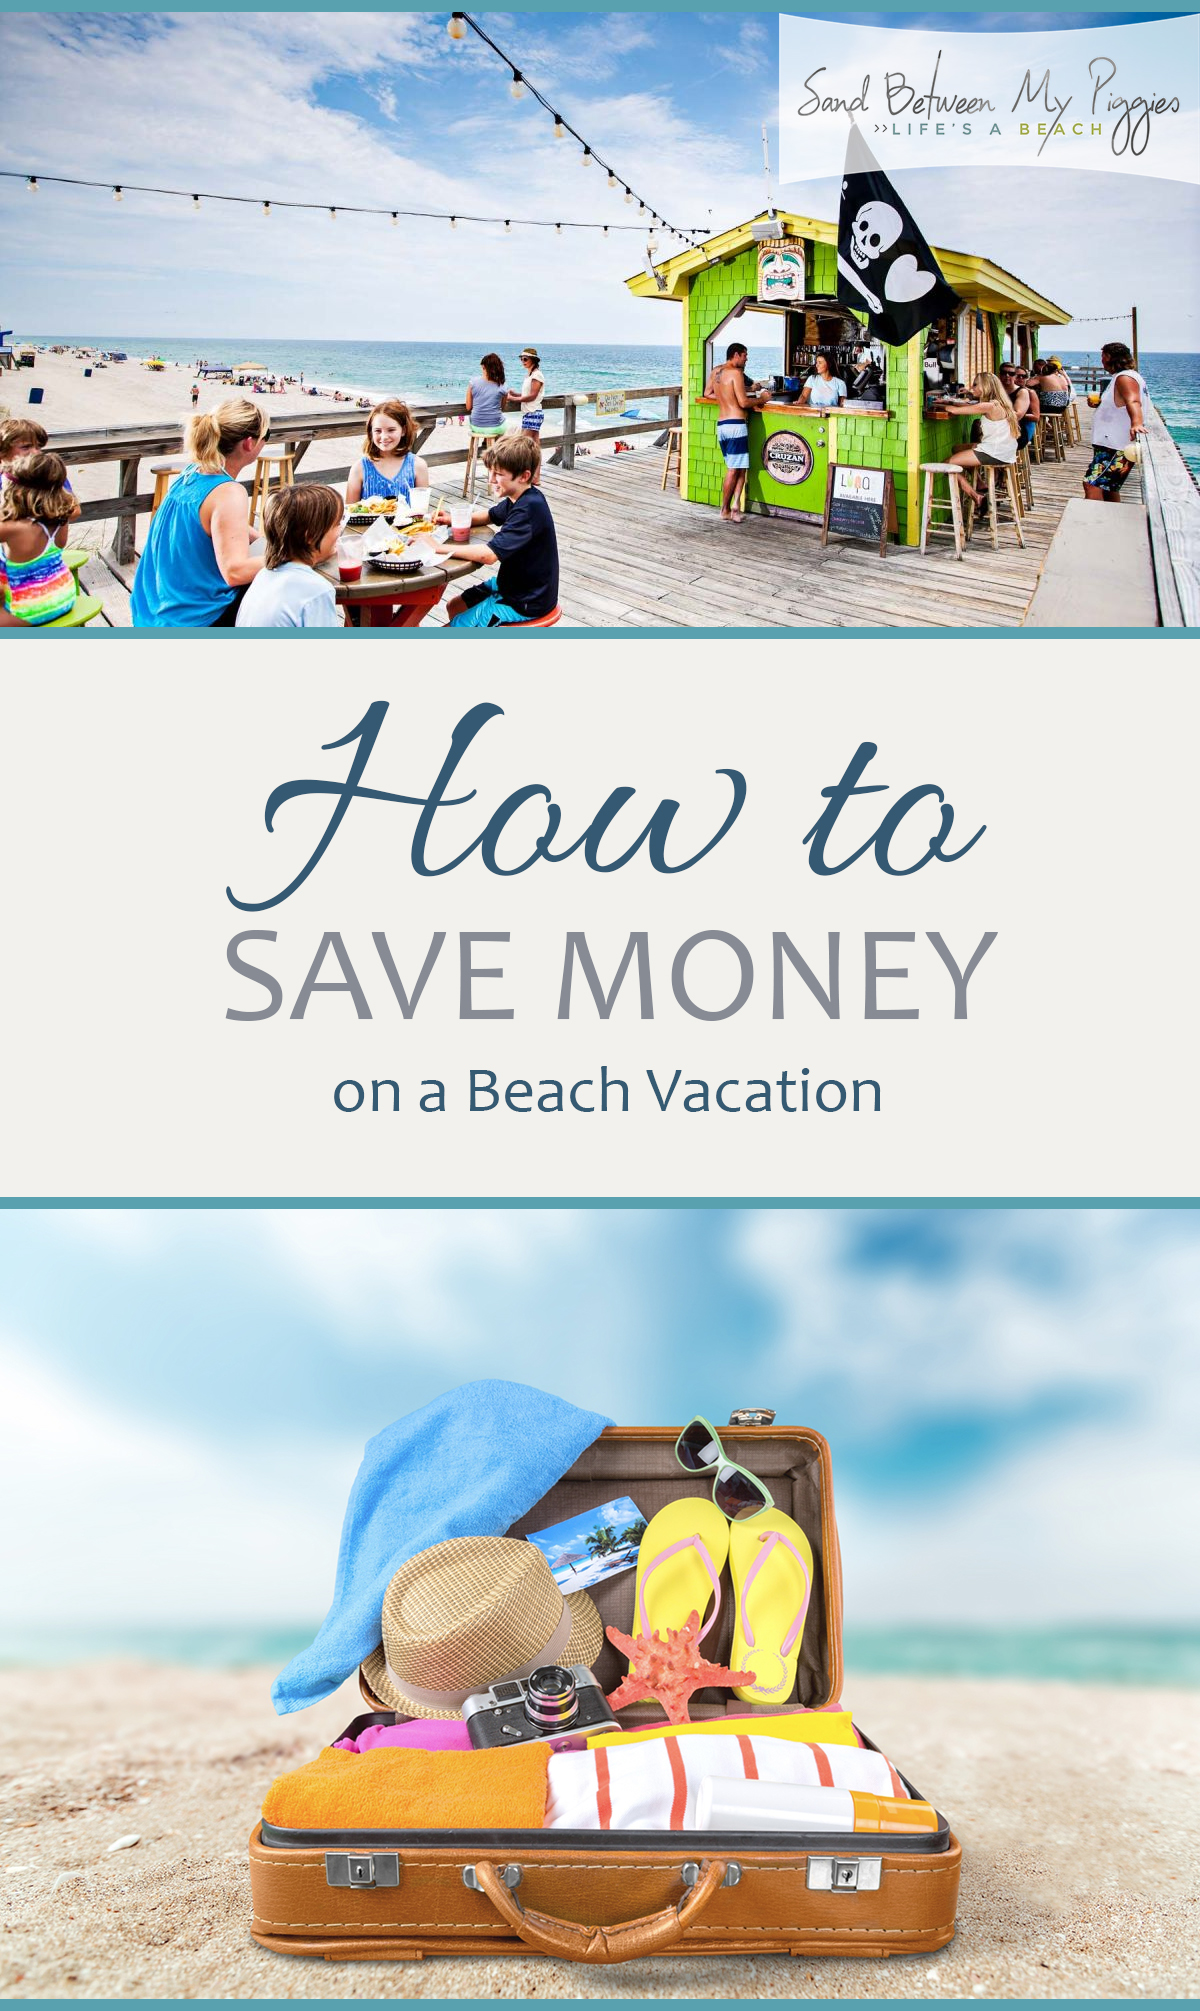 Beach vacation, How to Save Money on Beach Vacations, Vacation Hacks, Vacationing, Vacation for Less, Beach Vacation for Less, Popular Pin